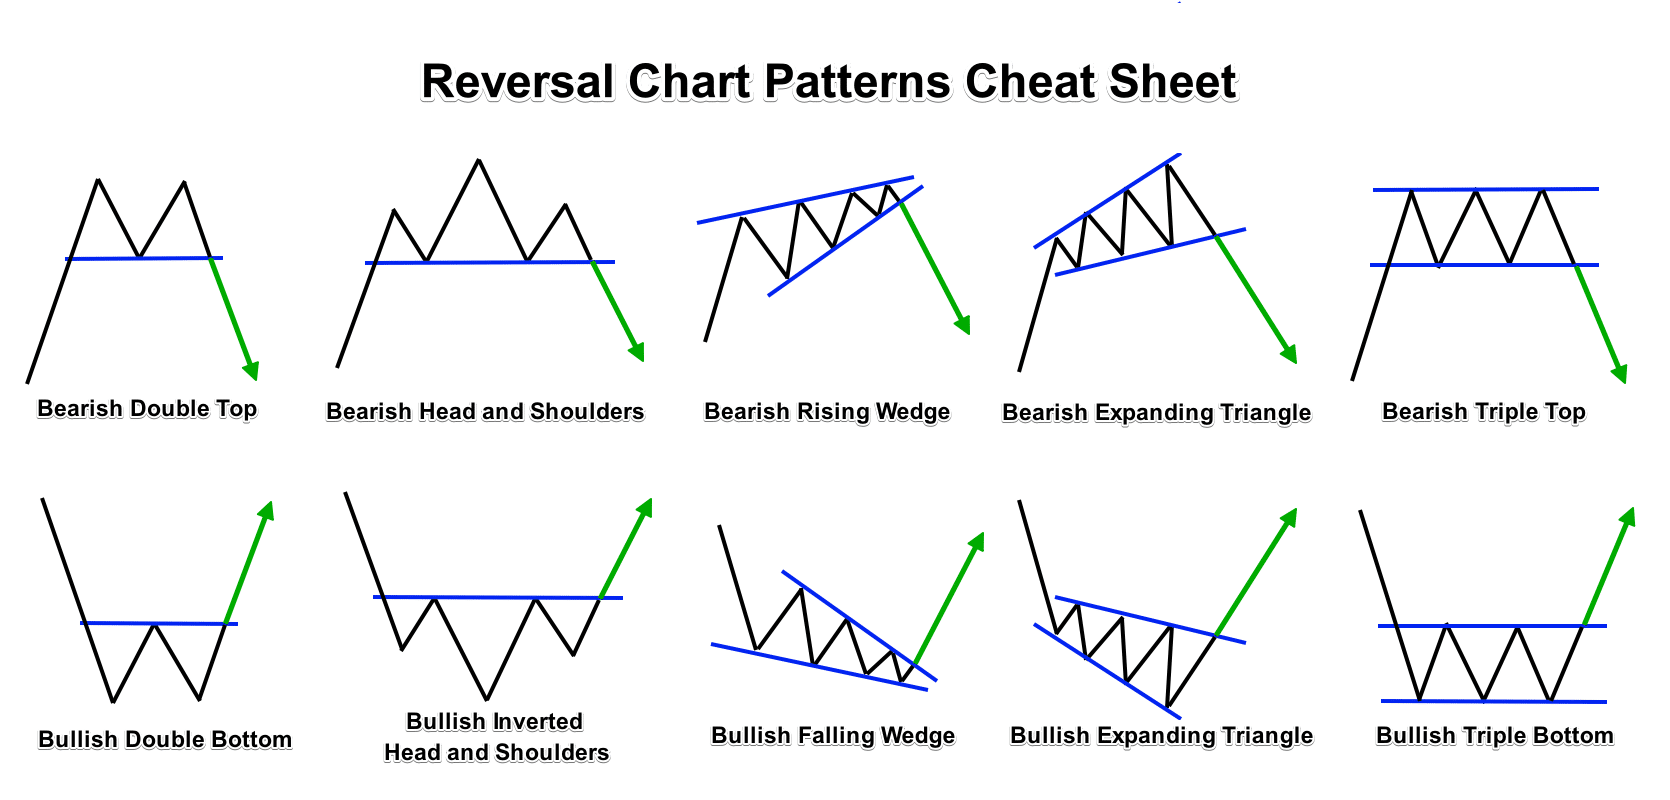 Reversal Forex Chart Patterns Cheat Sheet